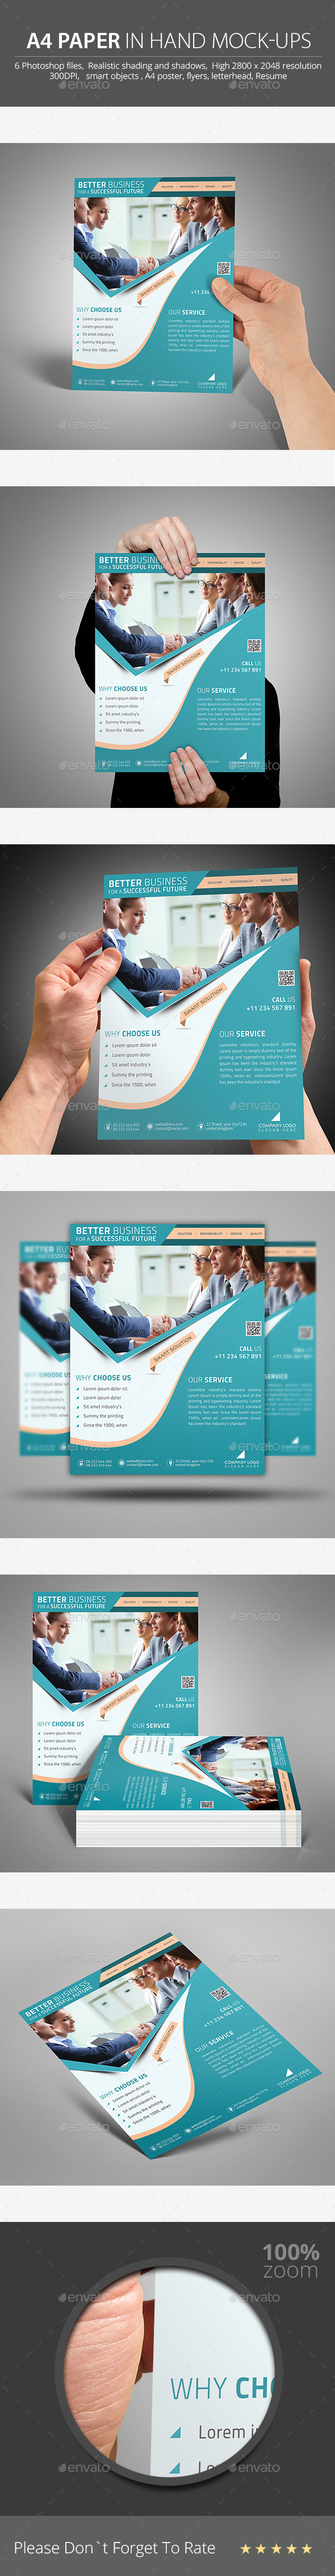 GraphicRiver A4 Paper in Hand Mock-ups 9261440